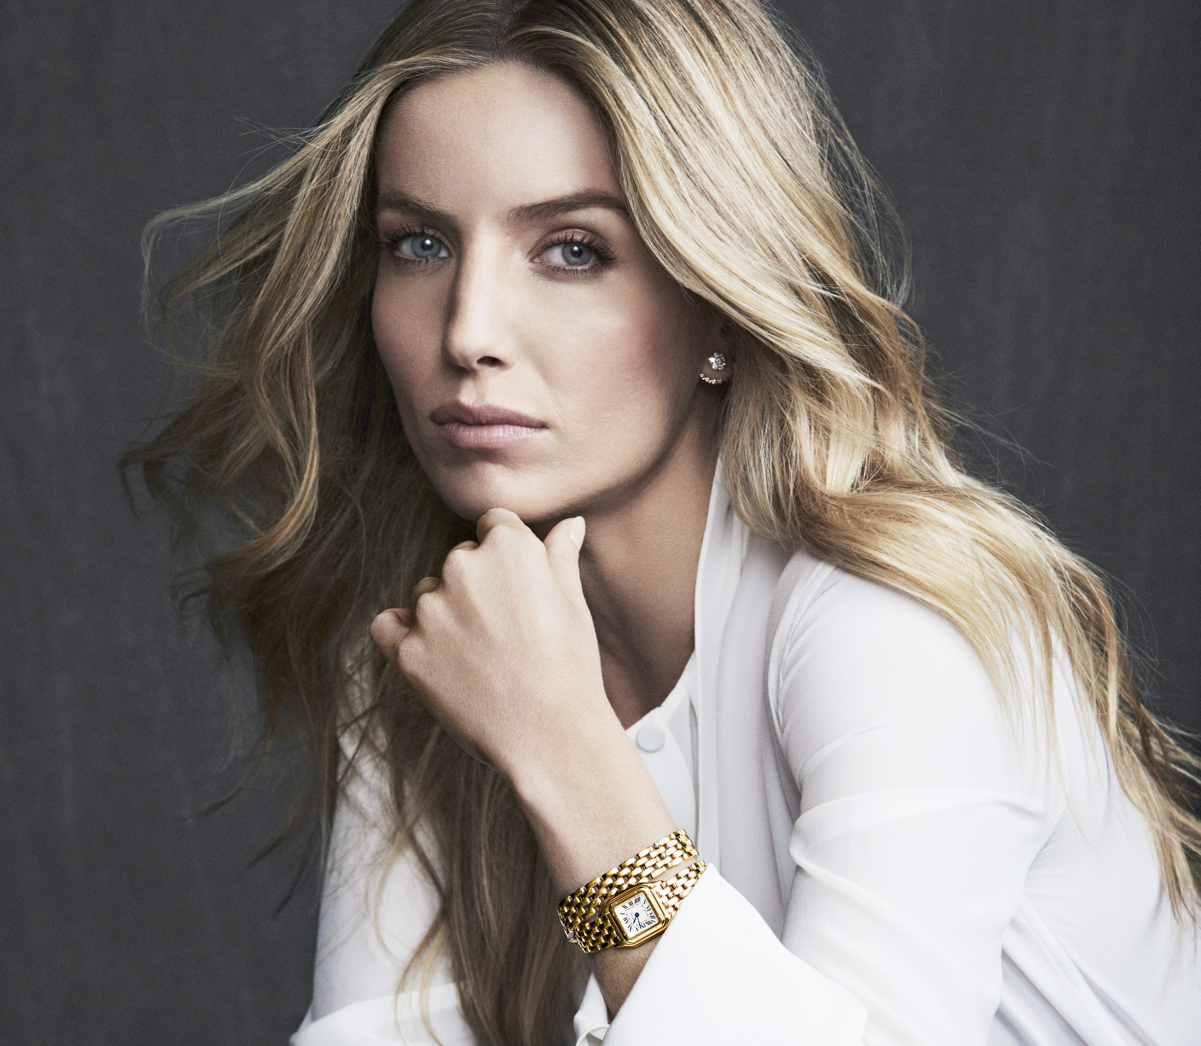 EXCLUSIVE: NPD analyst urges watch retailers to recognize growing spending power of women